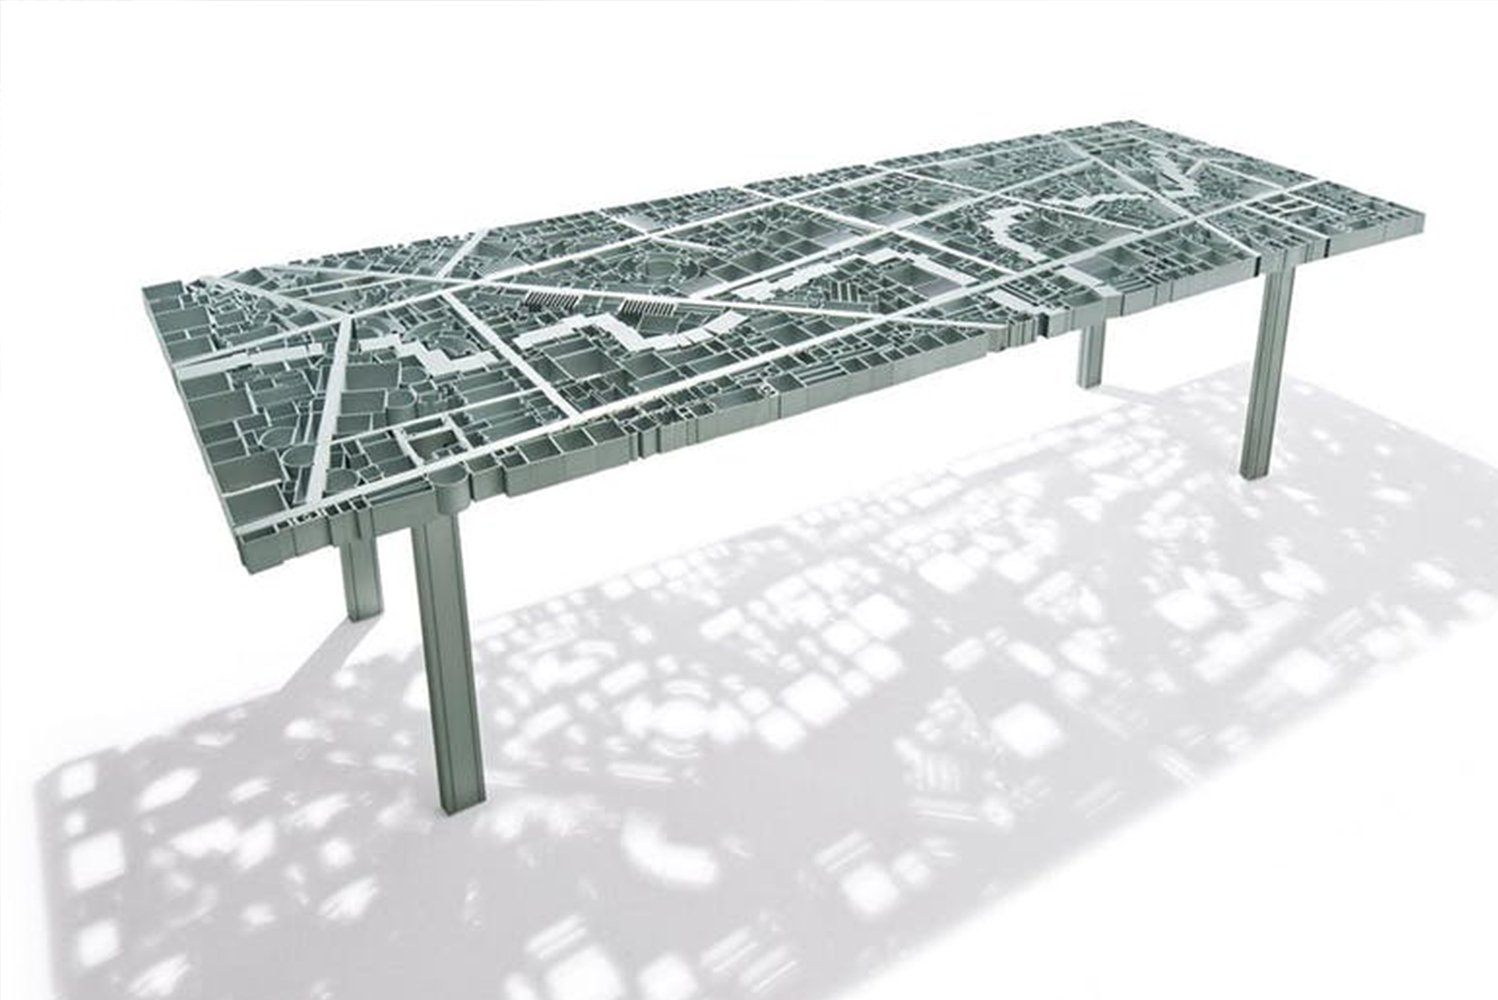 Edra launched Baghdad, a manually welded anodized aluminum table in the form of a city map.